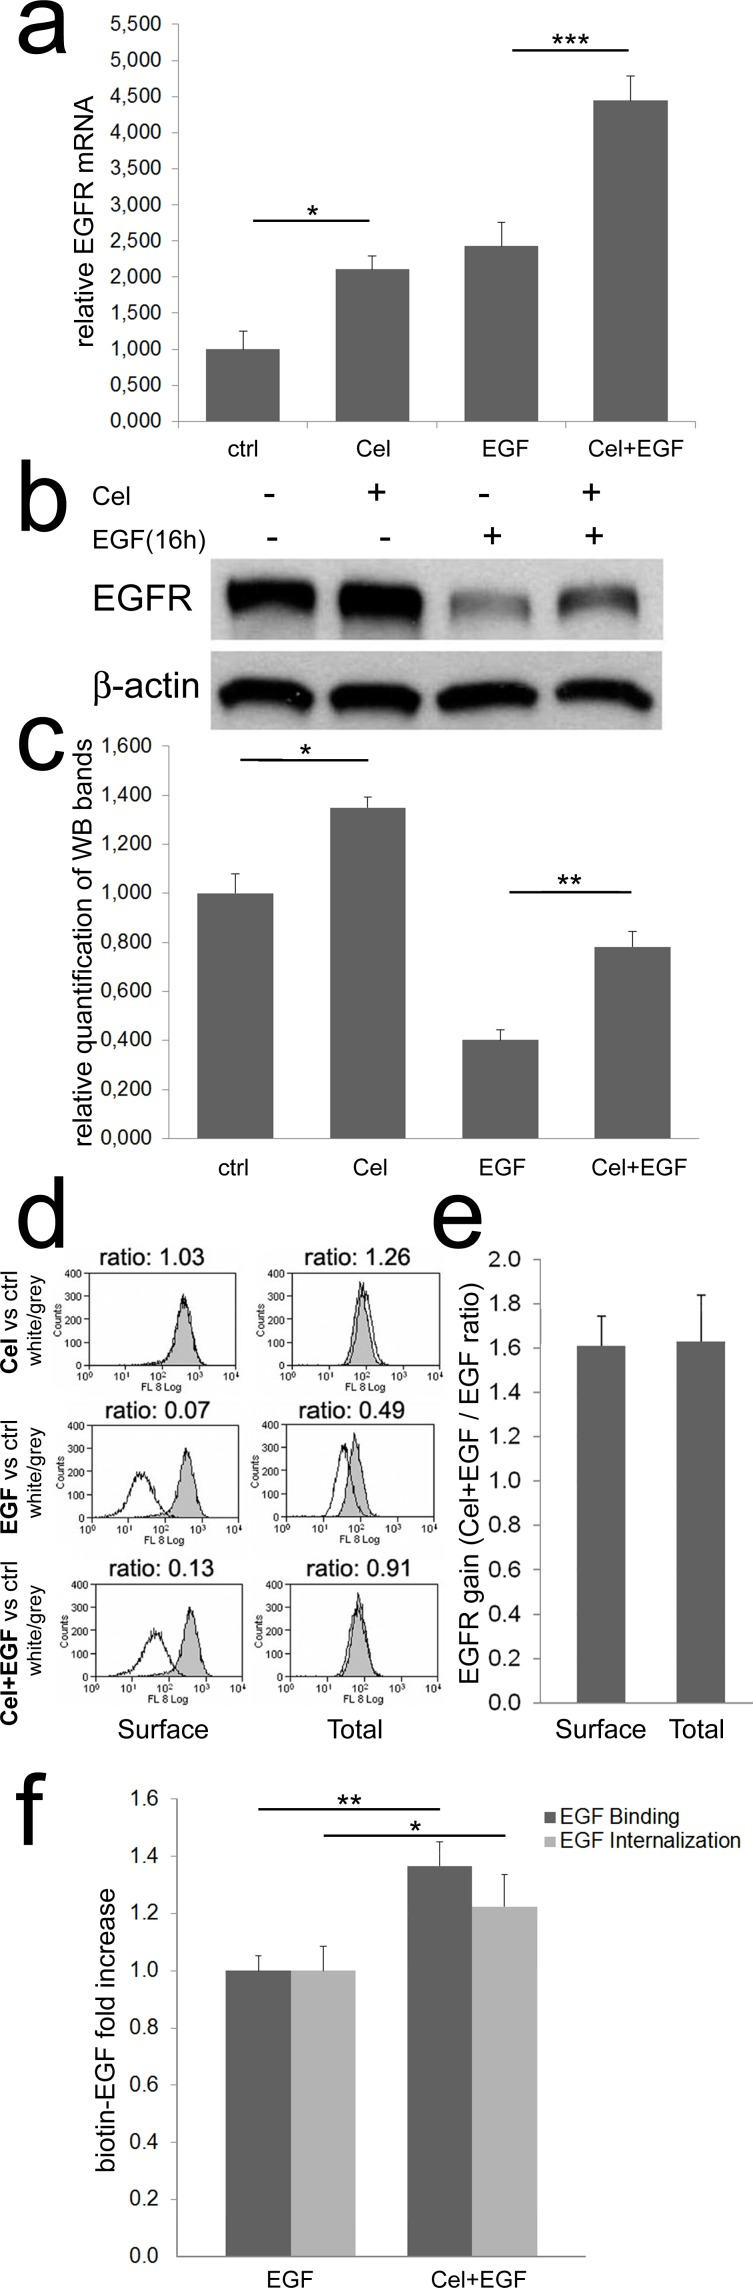 Celecoxib increases EGFR mRNA and protein expression a ) Real time PCR for EGFR. Colon TAFs were treated with Celecoxib (Cel, 10μM) for 48 hours; EGF (50ng/ml) was added as indicated during the last 16h of incubation. EGFR mRNA levels were normalized against the RP2 housekeeping gene. The mean values of three independent tests are shown. b ) A western blot for EGFR under the same condition reported for Real Time PCR. c ) The relative mean intensity of bands from six independent western blots, on three different TAFs primary cell cultures, was calculated by densitometry and plotted. d ) Flow cytometric analysis of surface and total EGFR. TAFs were treated as described above. The peaks, representing EGFR expression under Celecoxib (Cel), EGF, or Celecoxib plus EGF (Cel+EGF) treatments (white peaks), were compared to EGFR levels detected in untreated controls (grey peaks). The MFI ratio (white/grey) was calculated and reported on each panel. e ) Surface and total EGFR increase induced by Celecoxib, calculated as Cel+EGF / EGF ratio of three independent flow cytometric analyses as reported in panel d. f ) Binding and internalization of biotin-EGF in colon TAFs primed or not with Celecoxib and treated with biotin-EGF (50ng/ml) for 45 or 30min respectively. The test was run in six replicates and repeated three times.